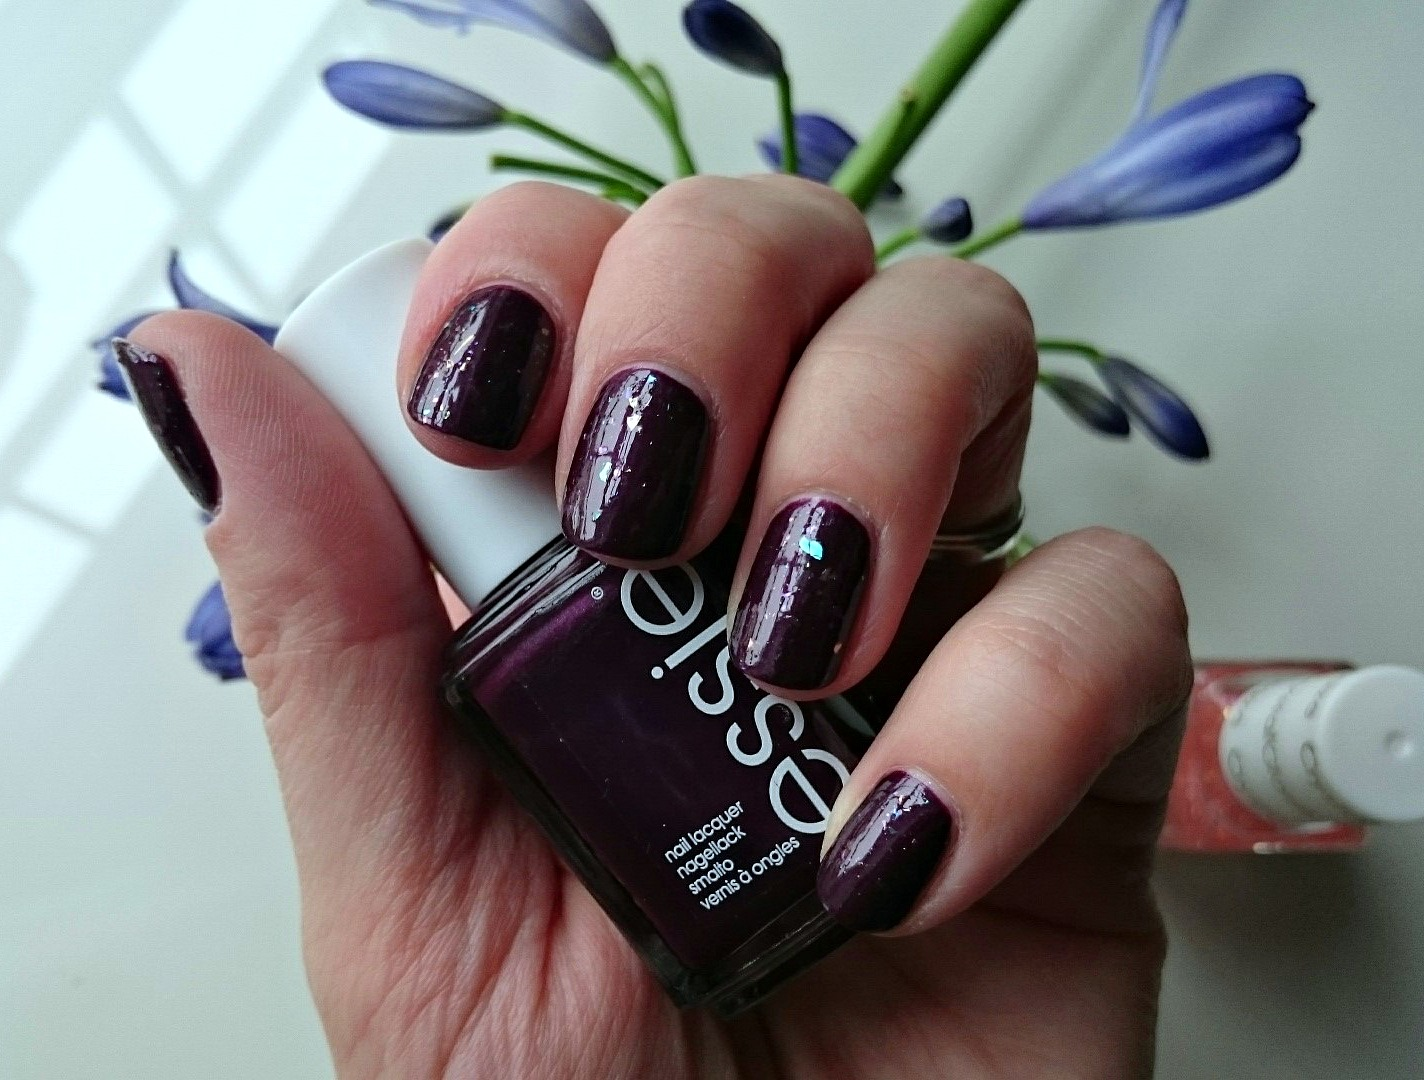 Essie Damsel in a dress